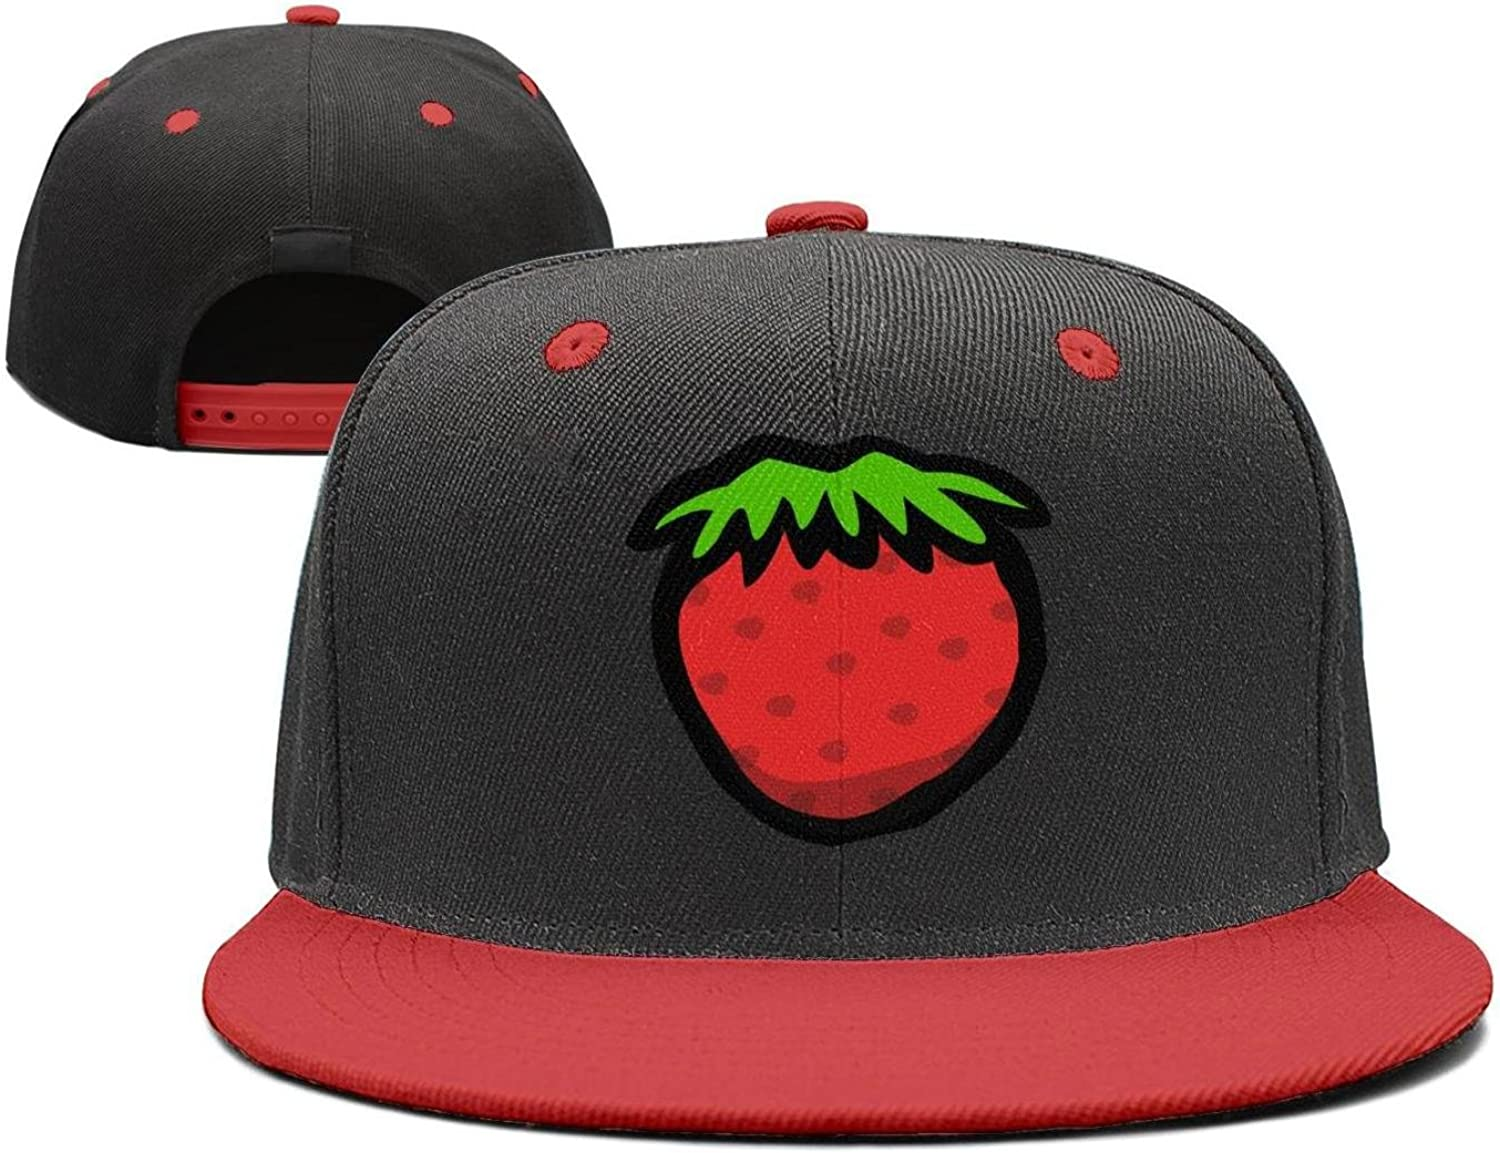 Coolhat Womens Mens Berries Pineapple Berries Watermelon Printed Adjustable Basketball Hat